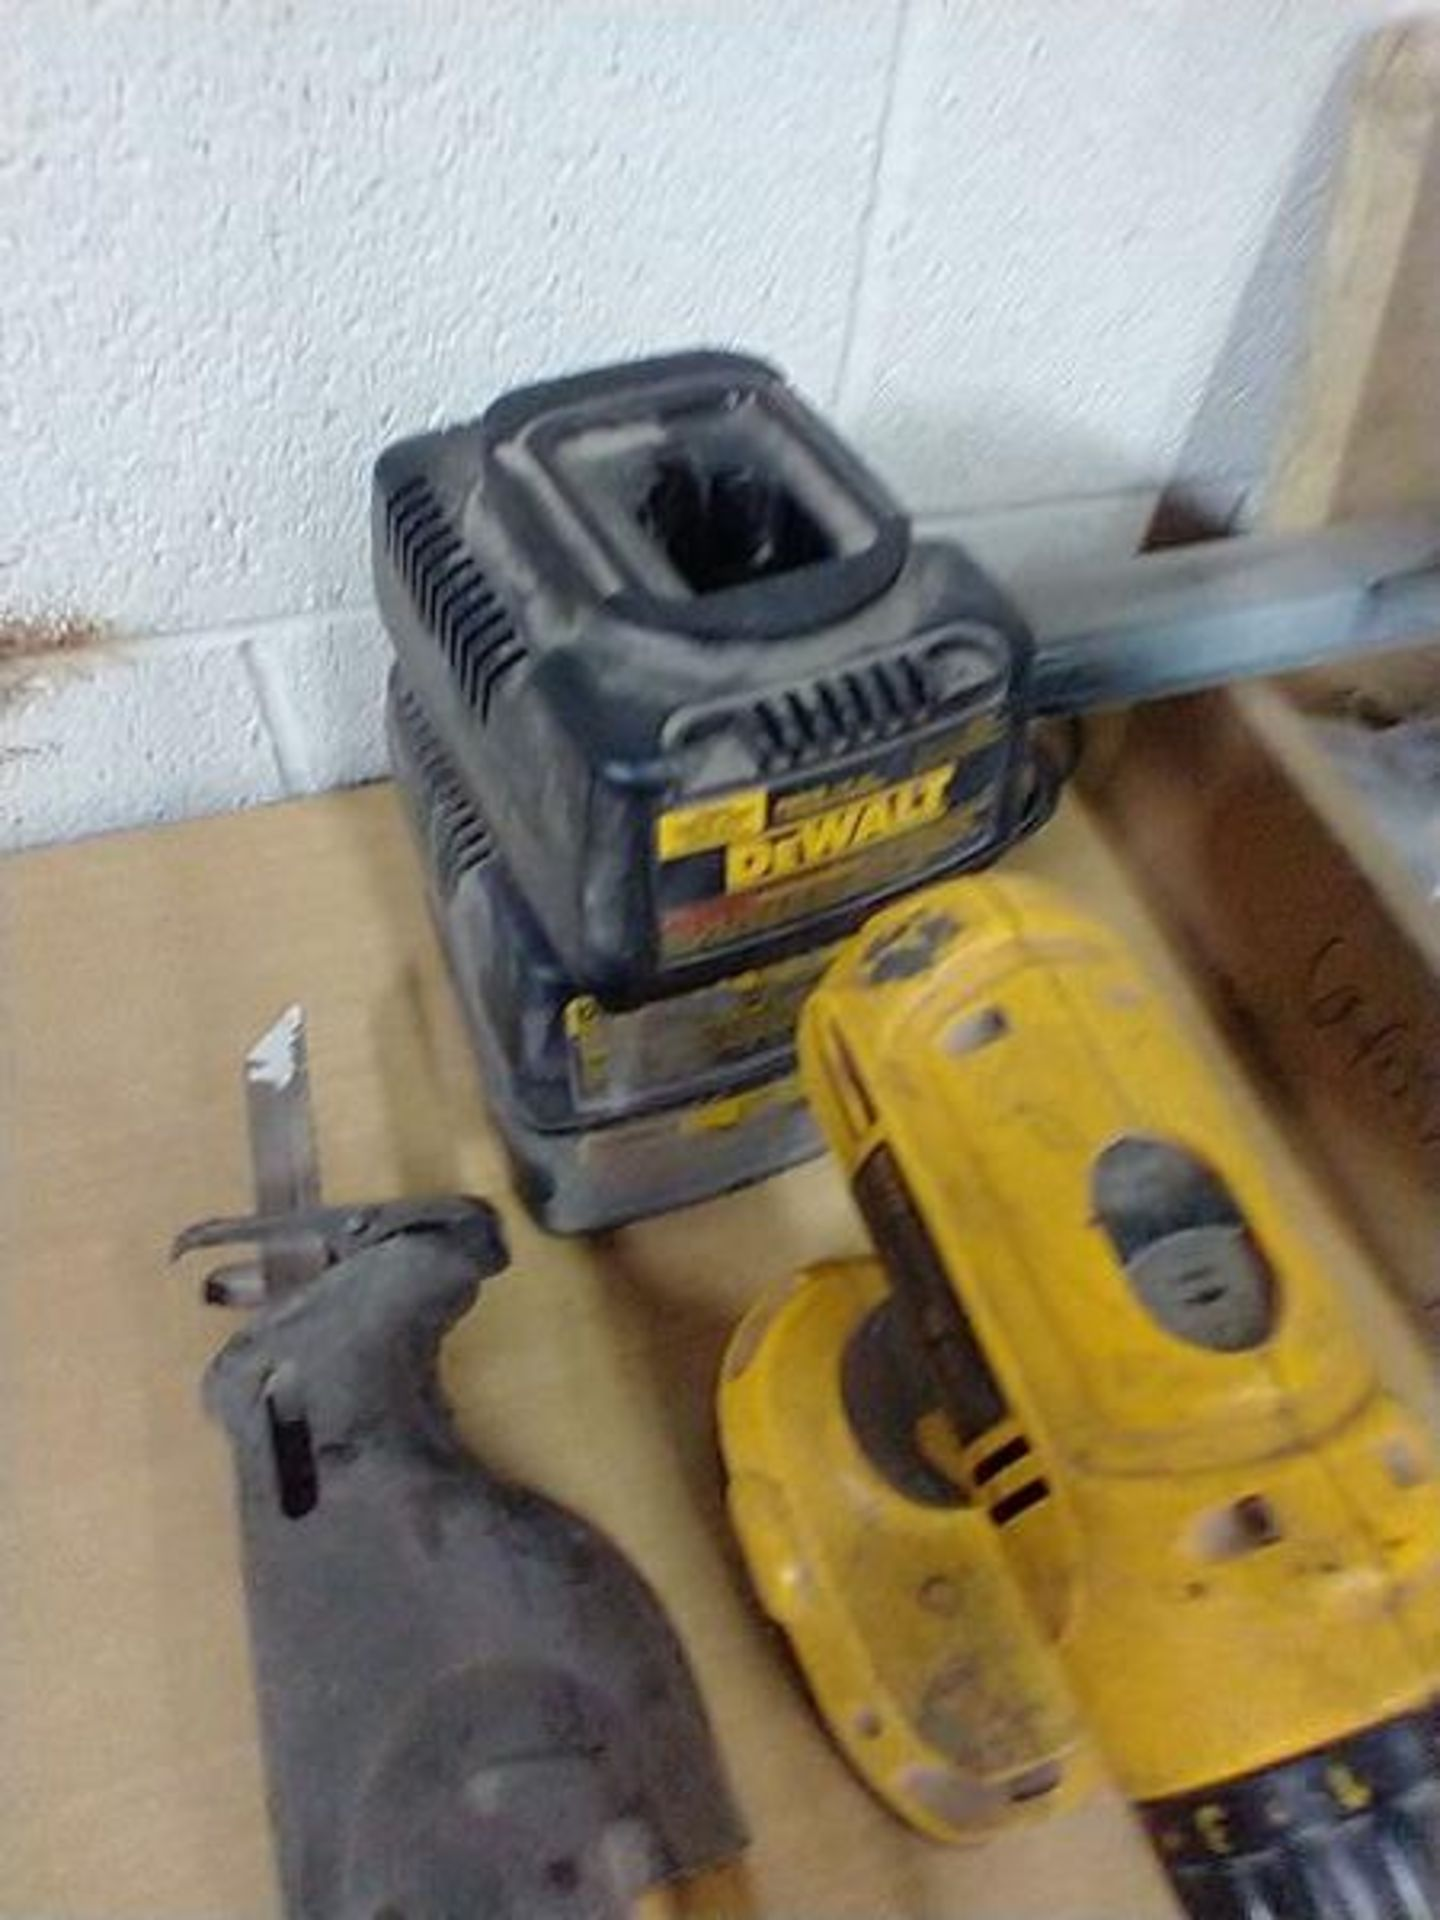 DEWALT DC970 18V DRILL AND DW938 18V RECIPROCATING SAW WITH CHARGER - Image 2 of 4